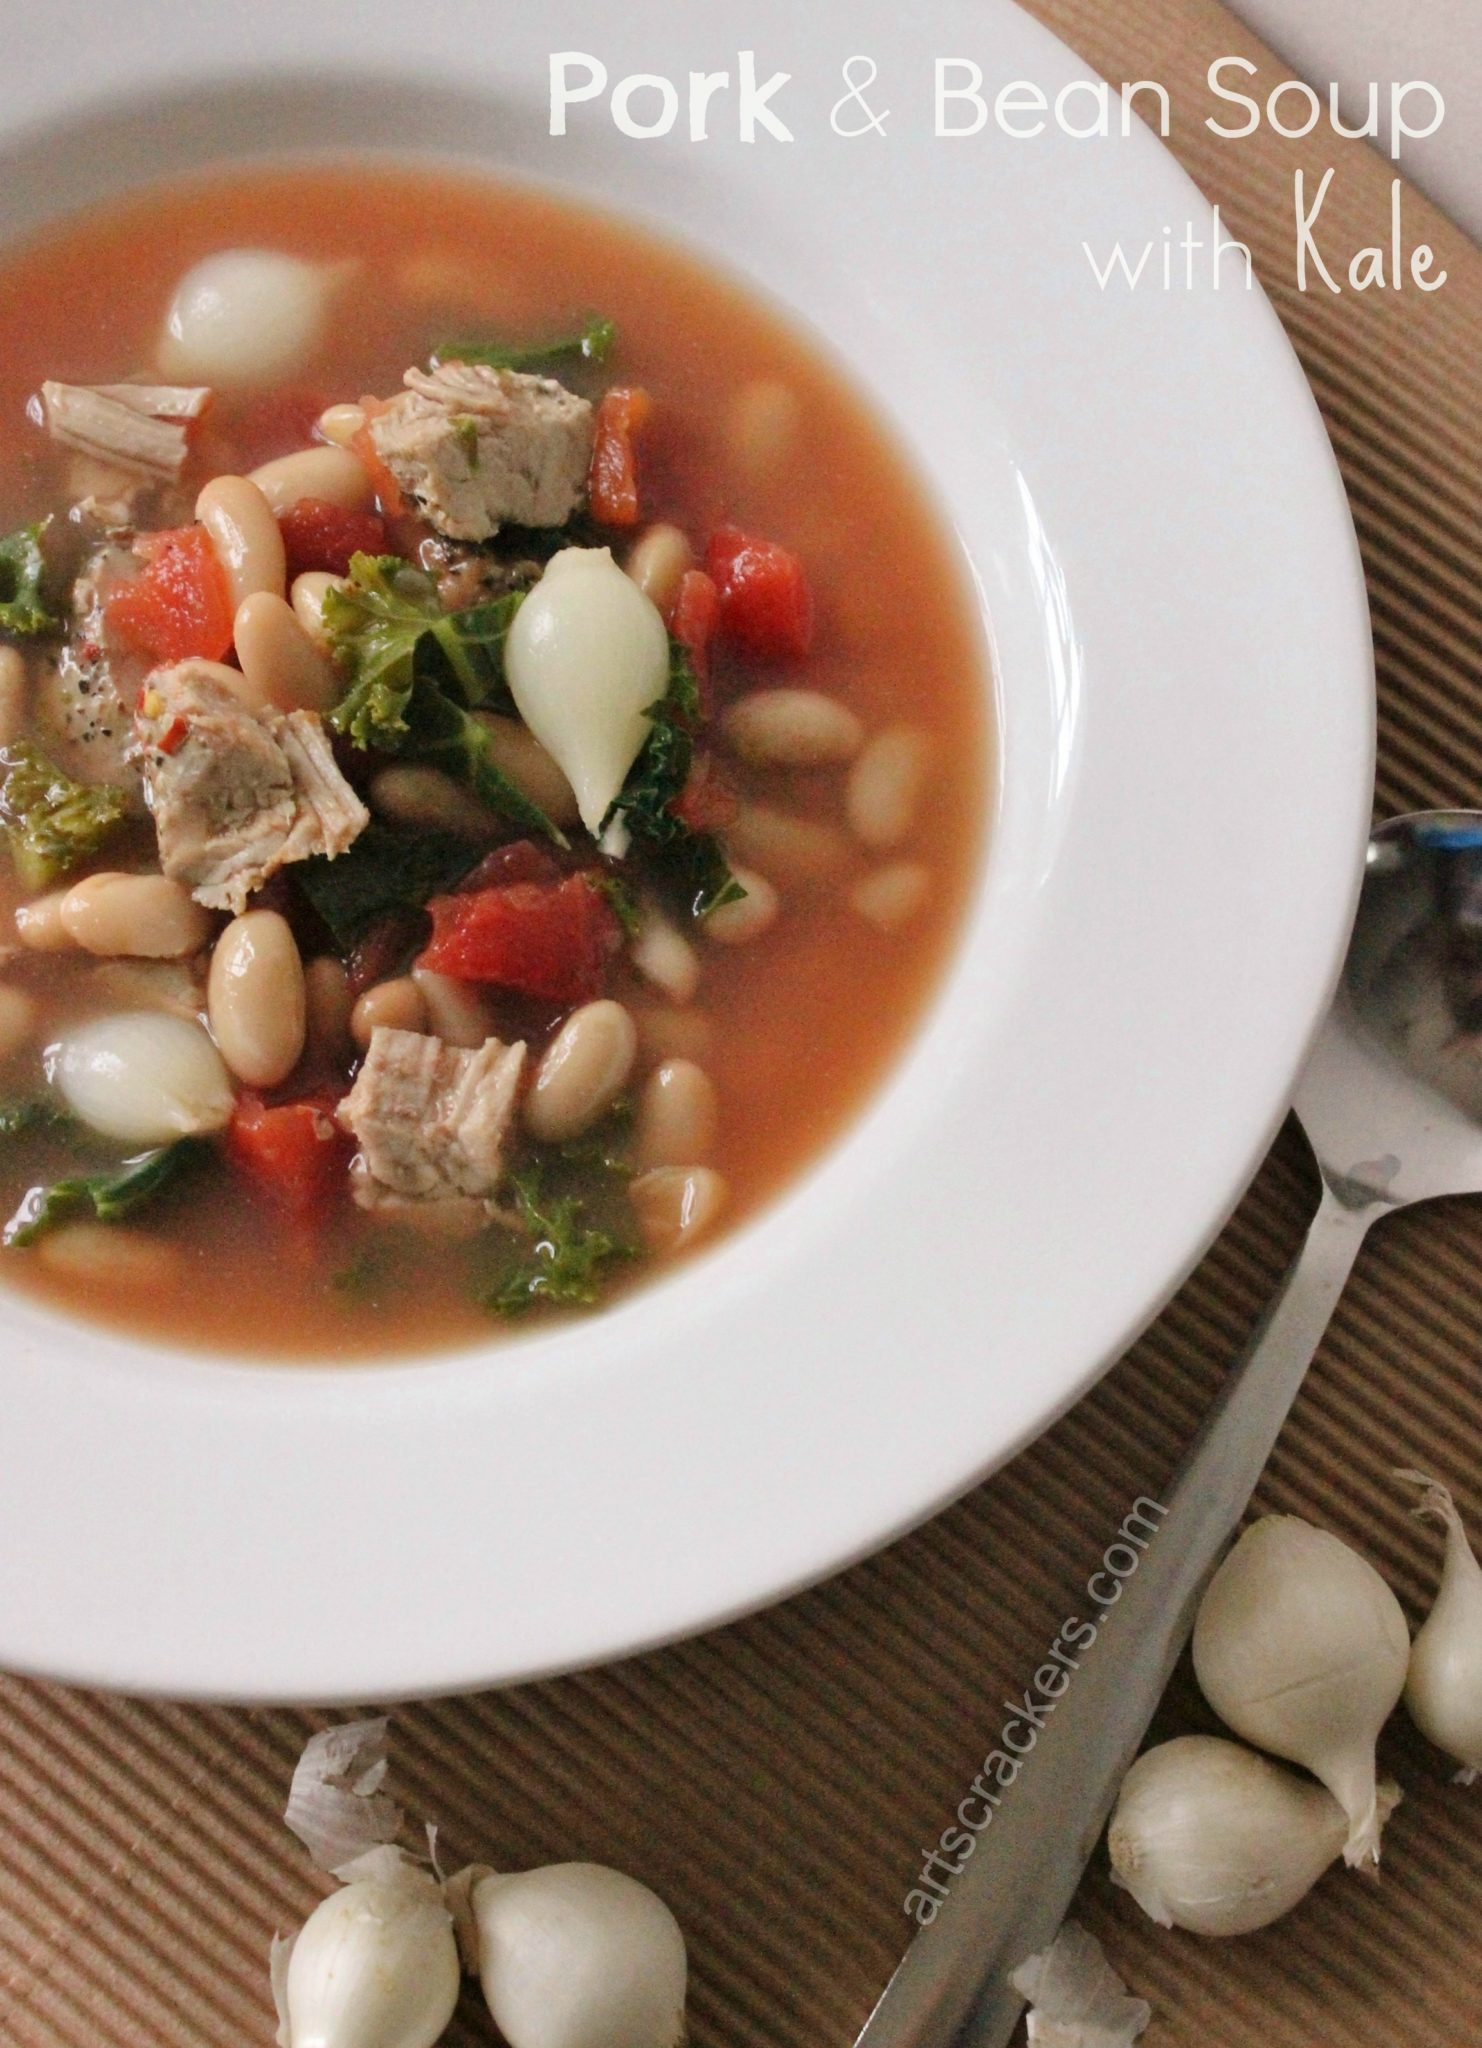 Tasty Pork and Bean Soup with Kale